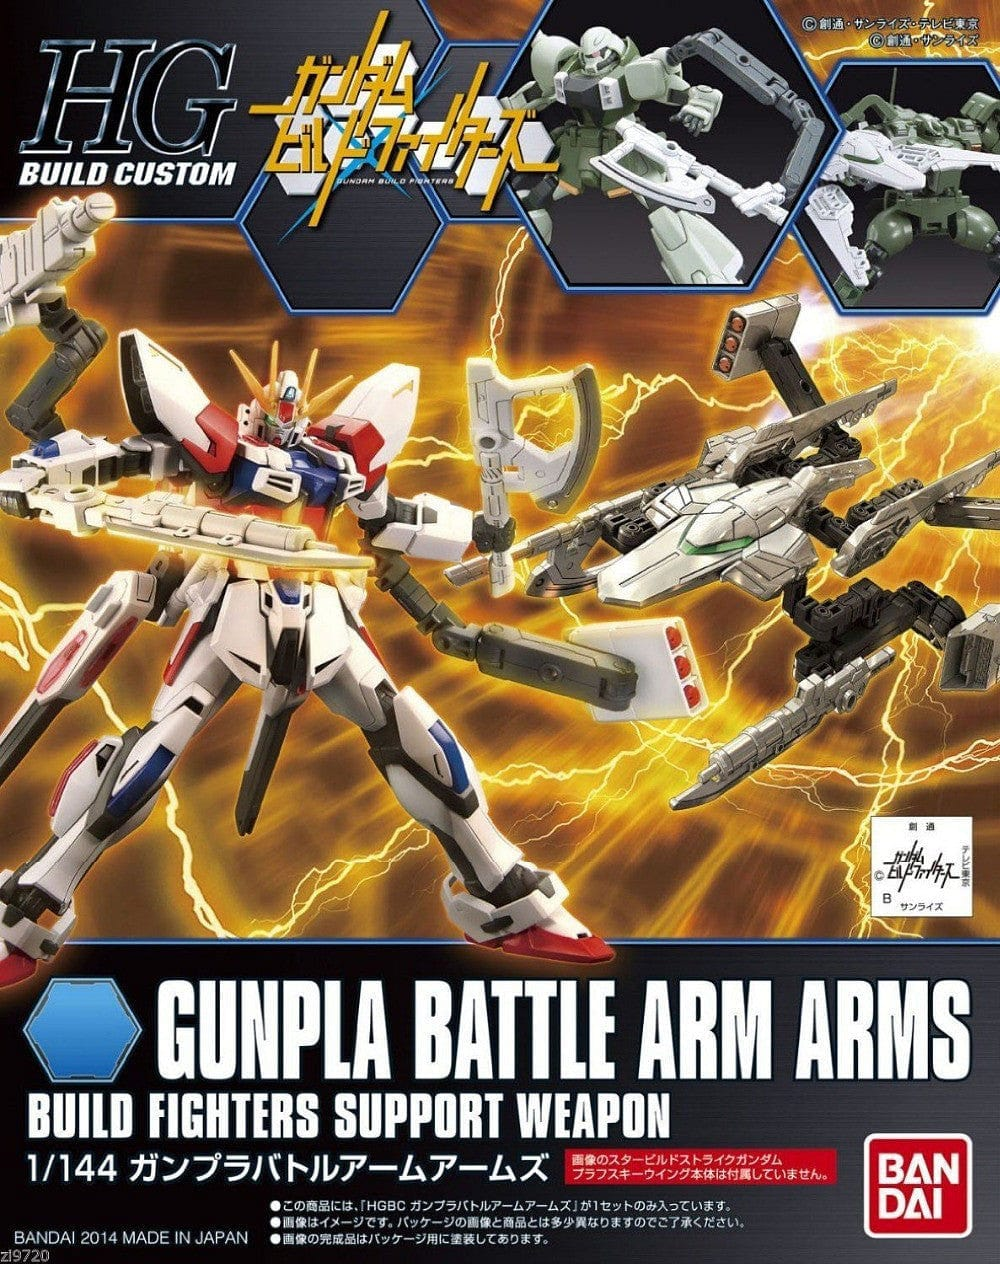 186526 1/144 Gunpla Battle Arm Arms Build Fighters Support Weapon HG #10 - RUI YONG HOBBY